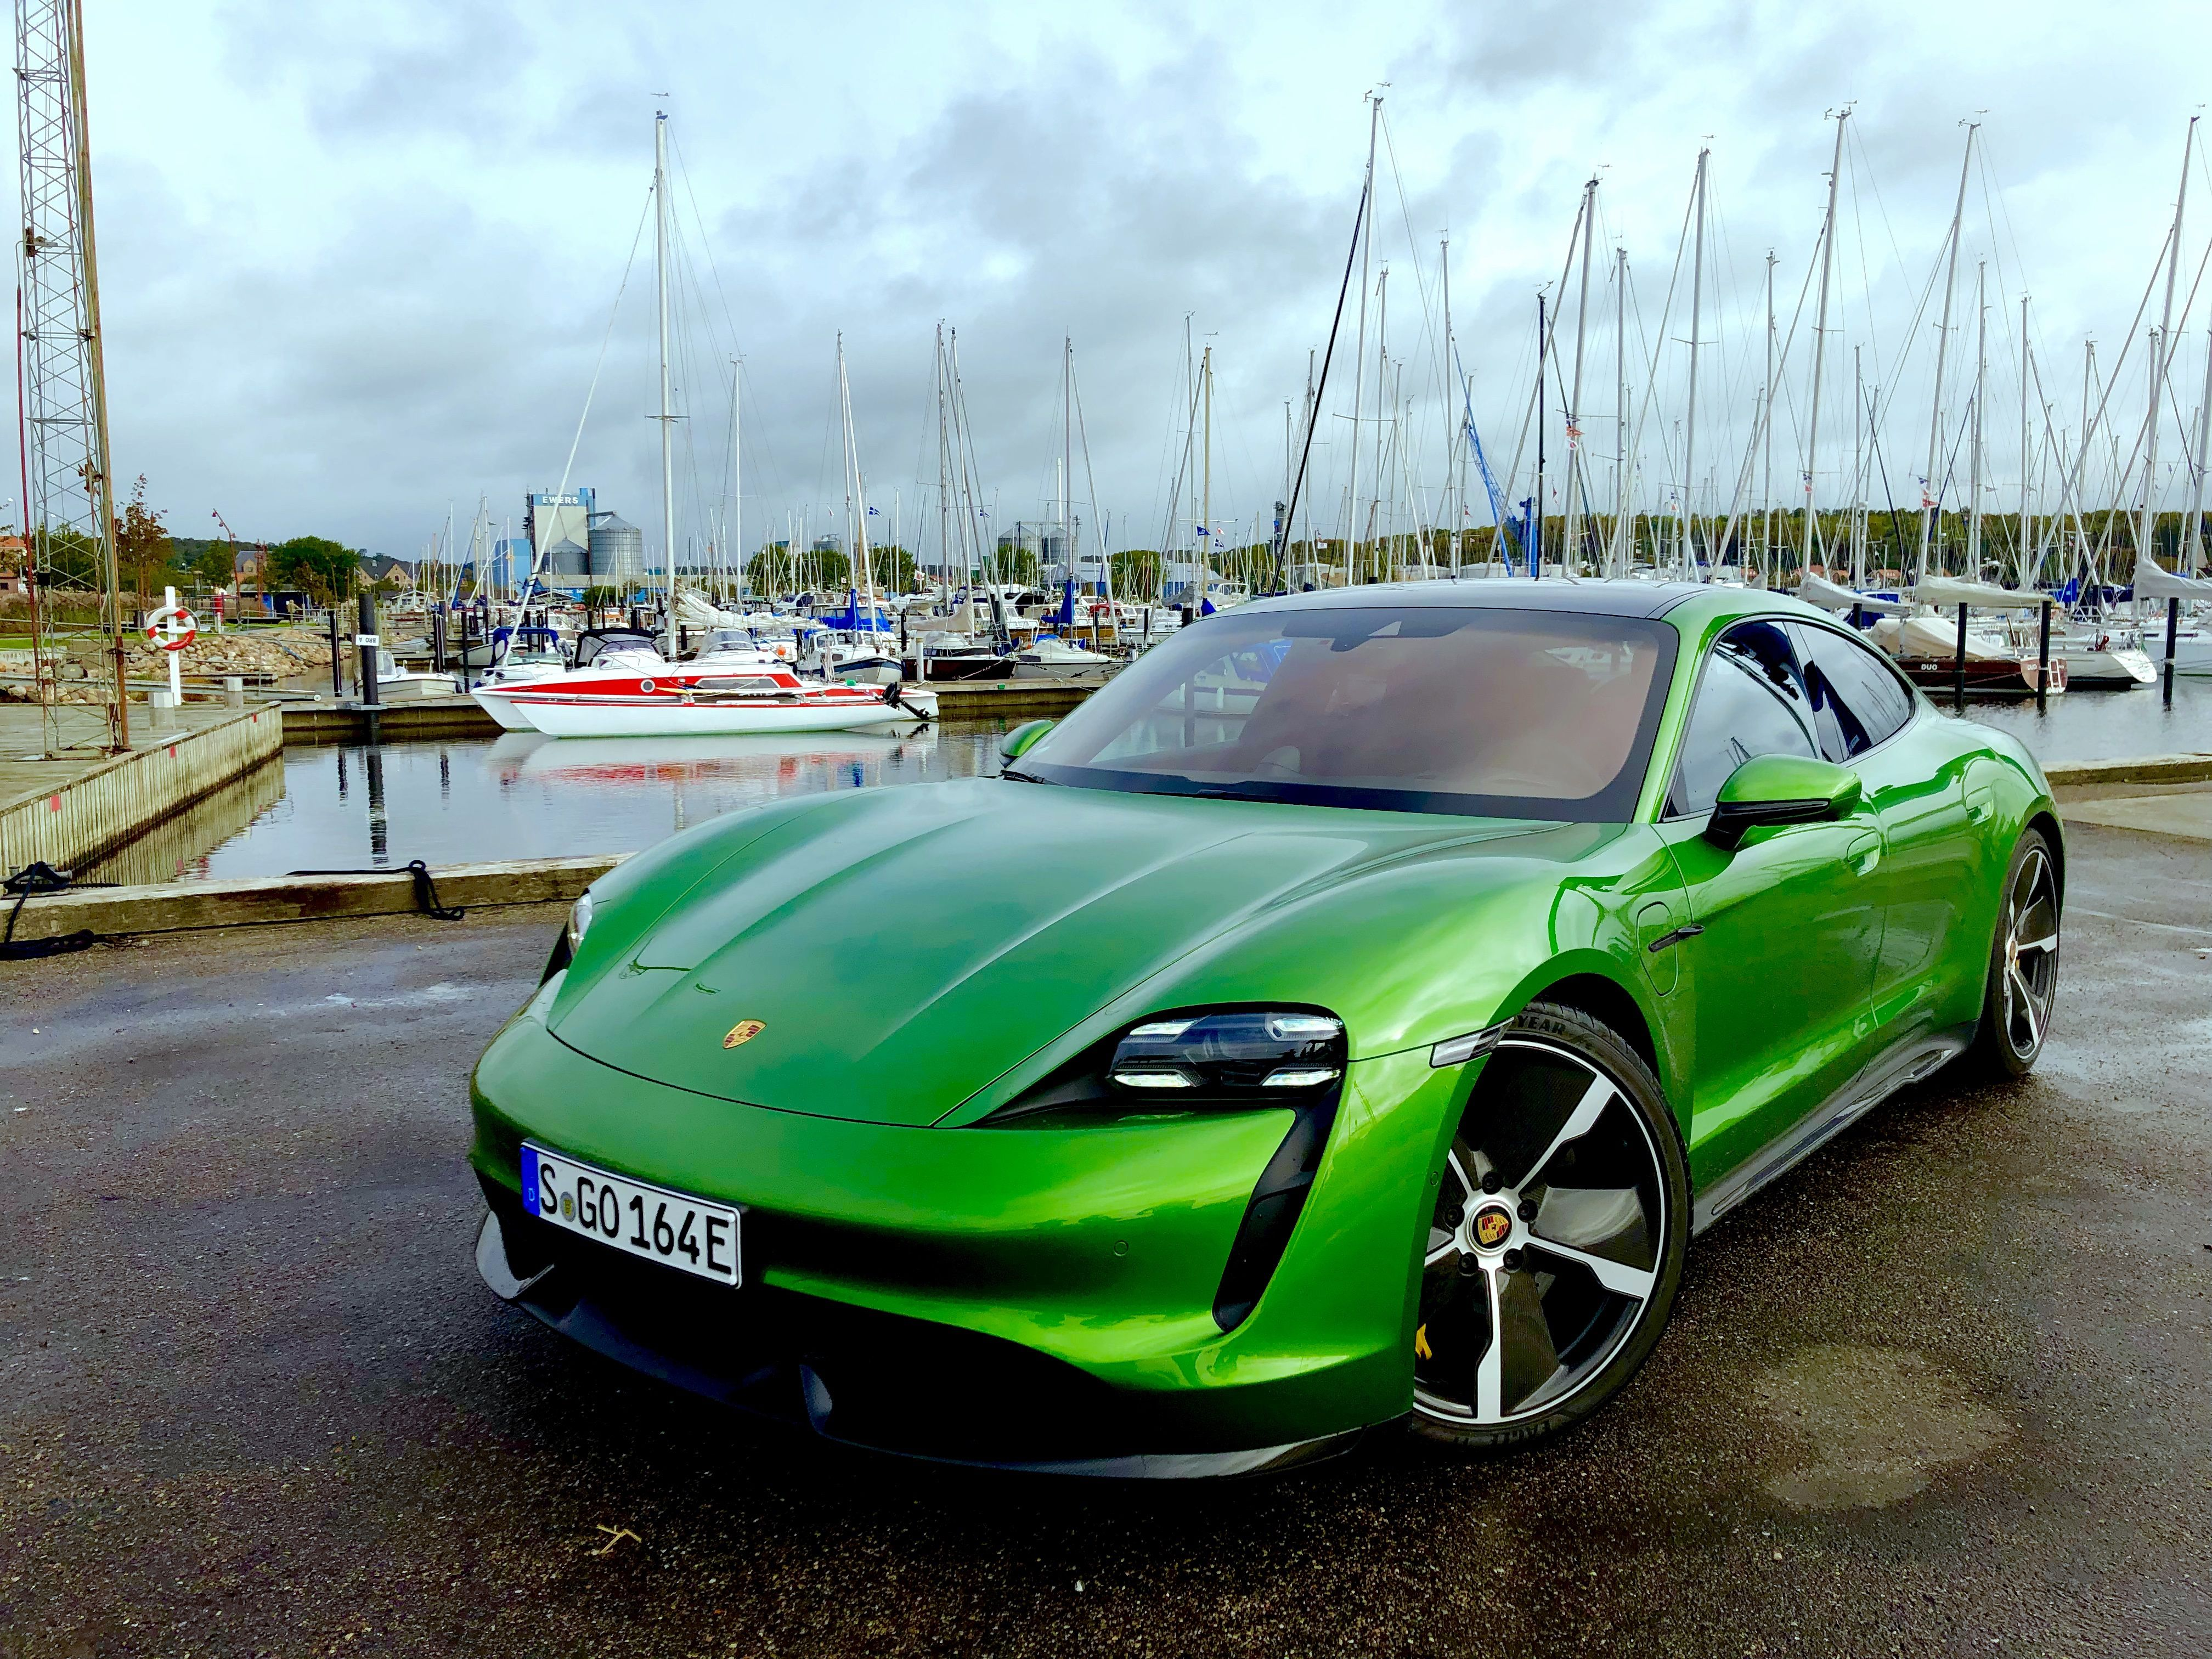 Review The All Electric Taycan Turbo Is Not Just A Technological Feat It S A Great Porsche The Globe And Mail